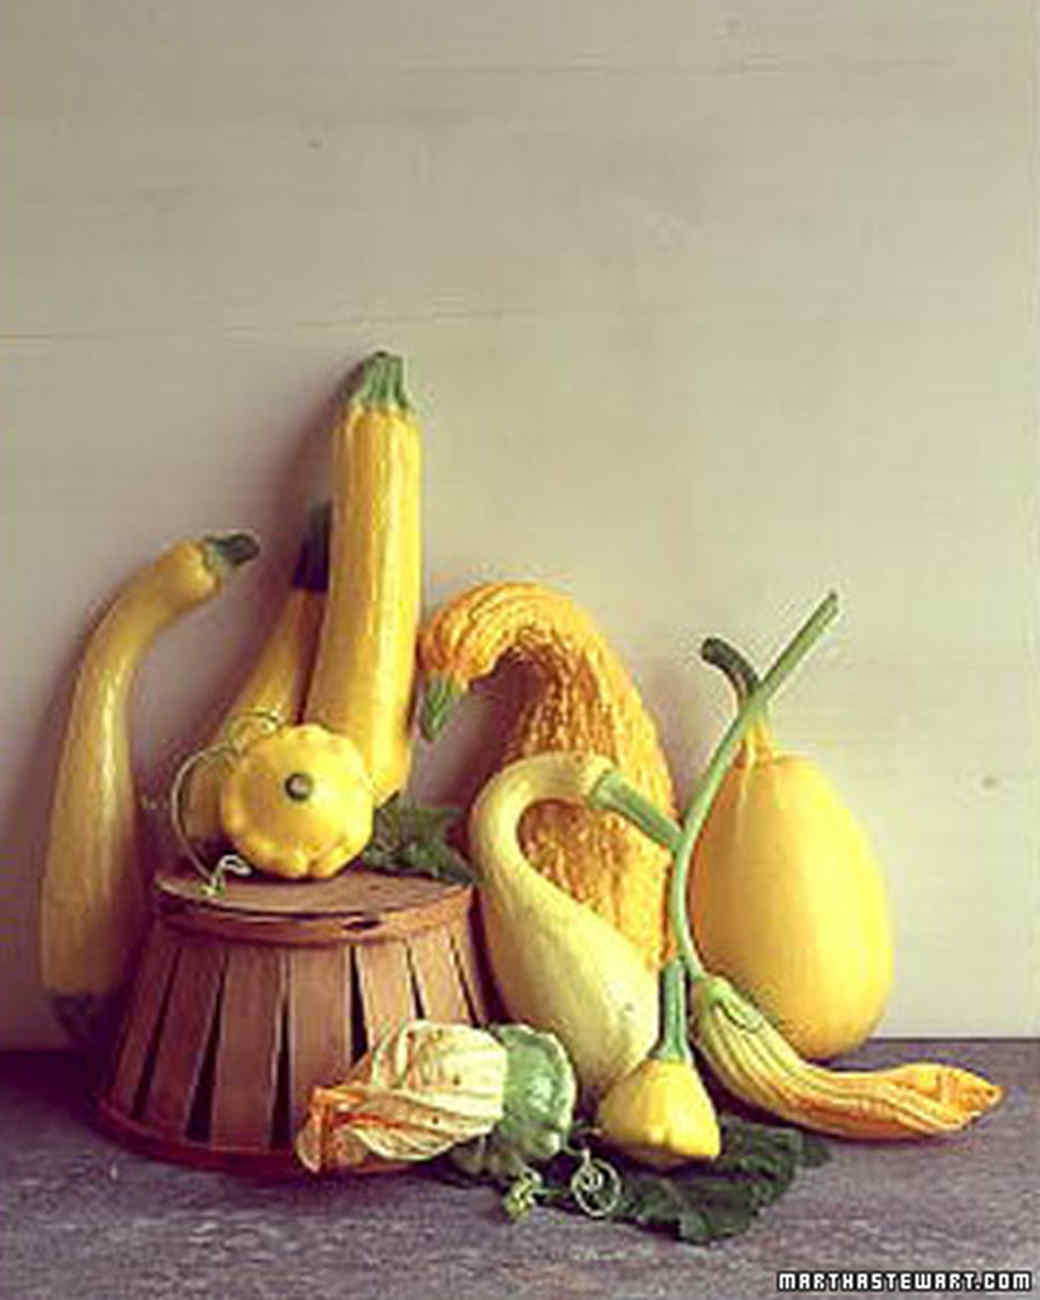 bmvn_0301_yellowsquash.jpg